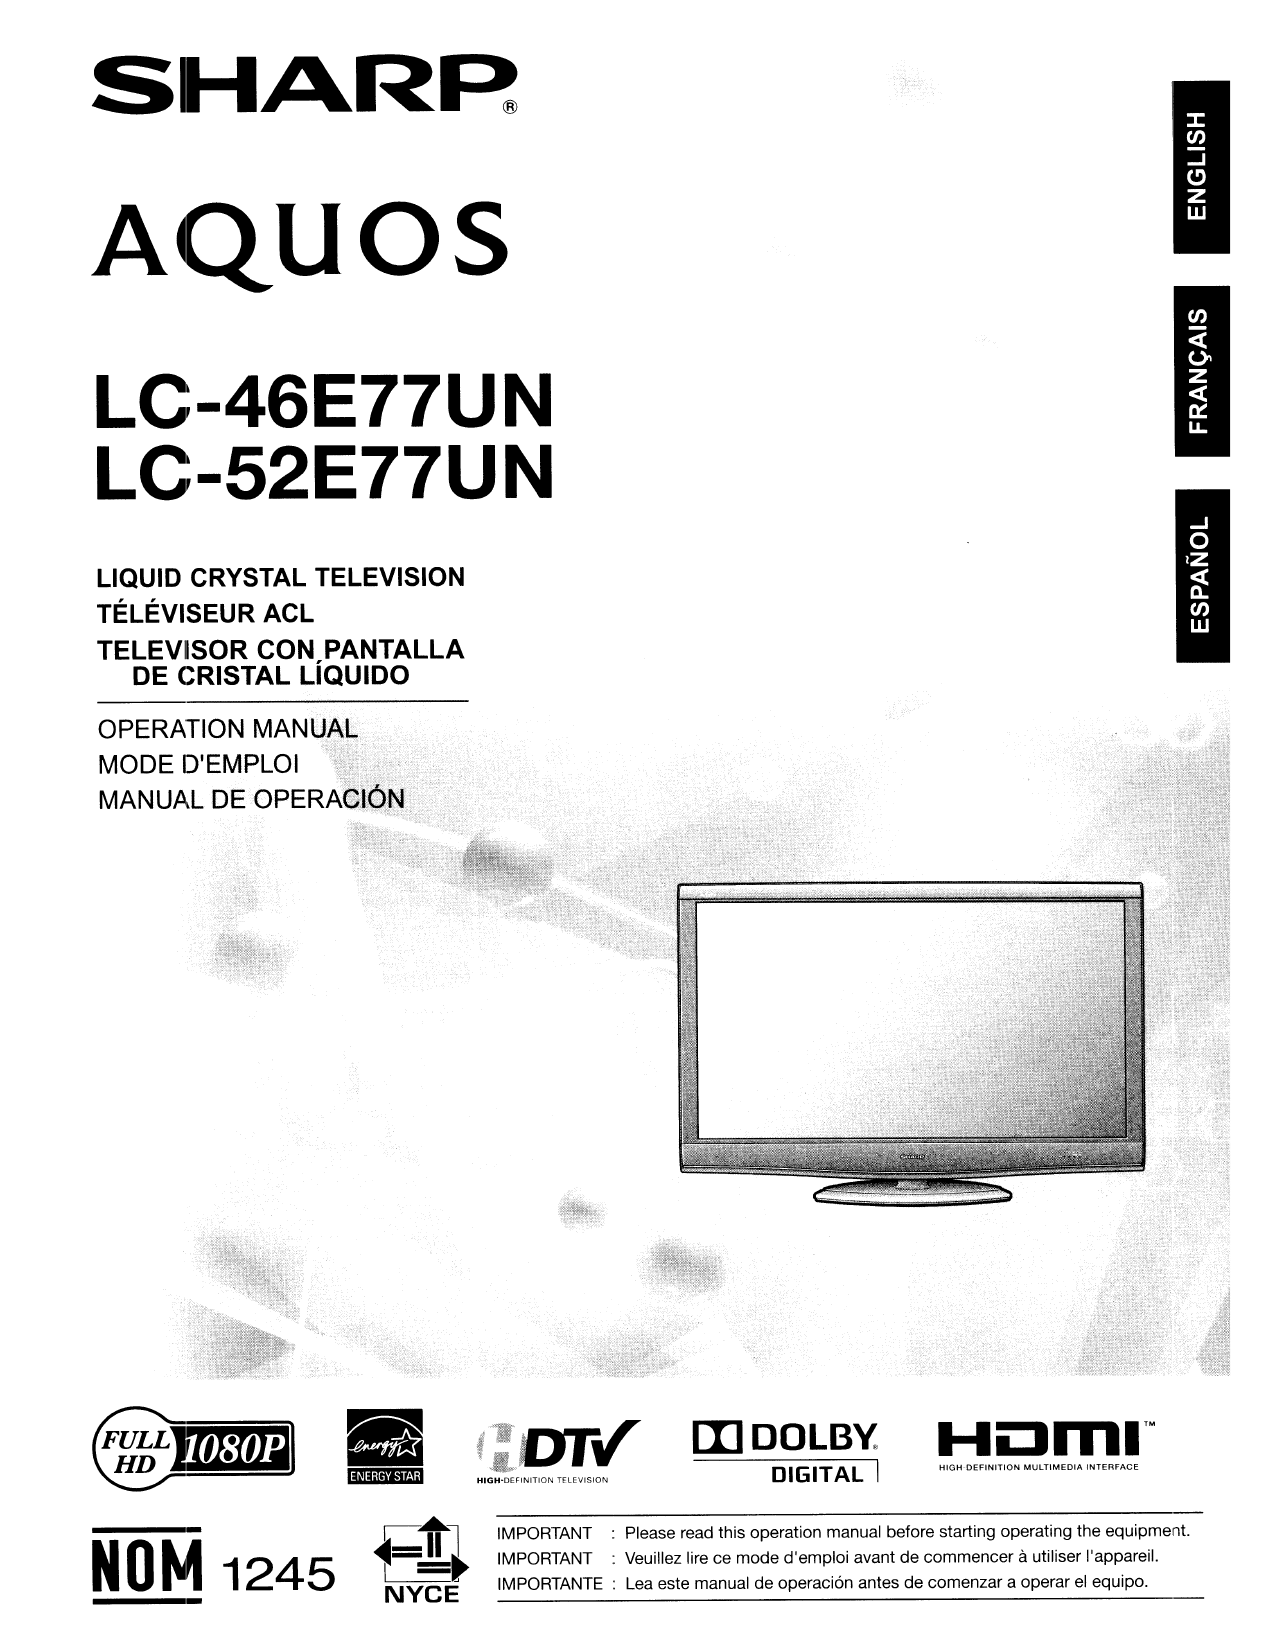 download free pdf for sharp aquos lc 52e77un tv manual rh umlib com sharp tv lc-52e77un manual sharp lc-52e77un service manual